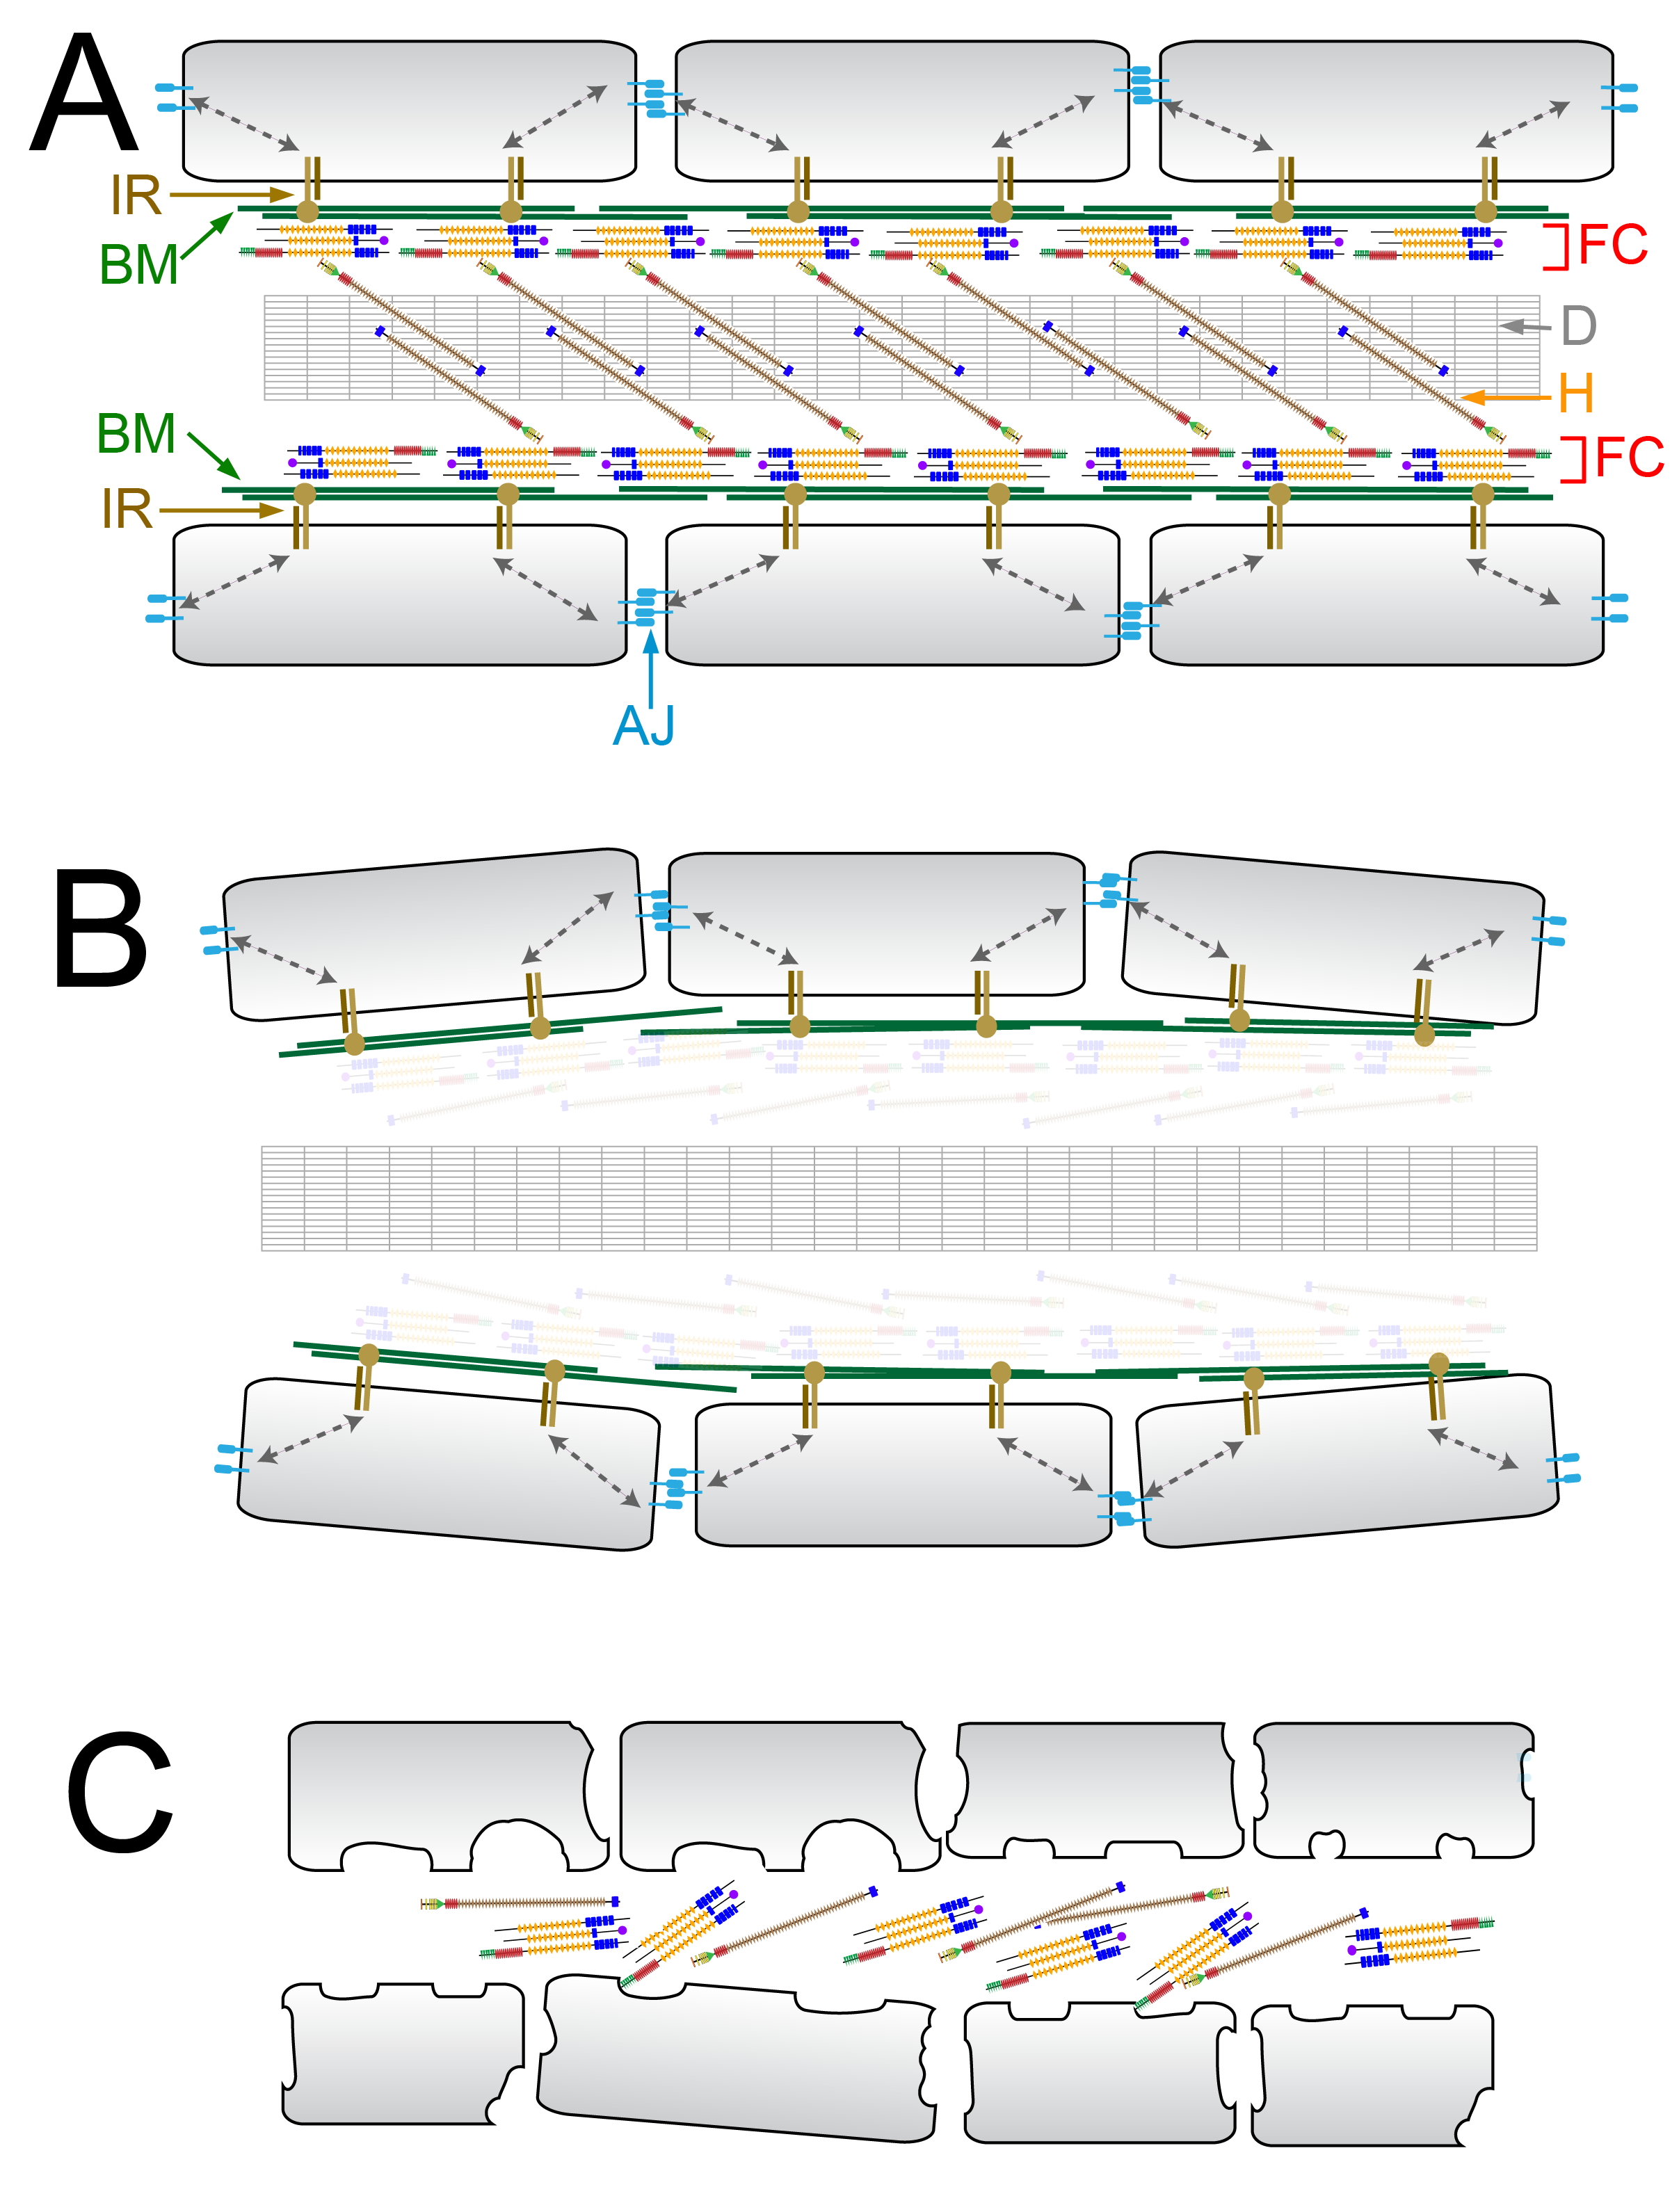 Model describing the ultrastructural changes underlying the fin phenotypes of blistering and dysmorphogenesis mutants.